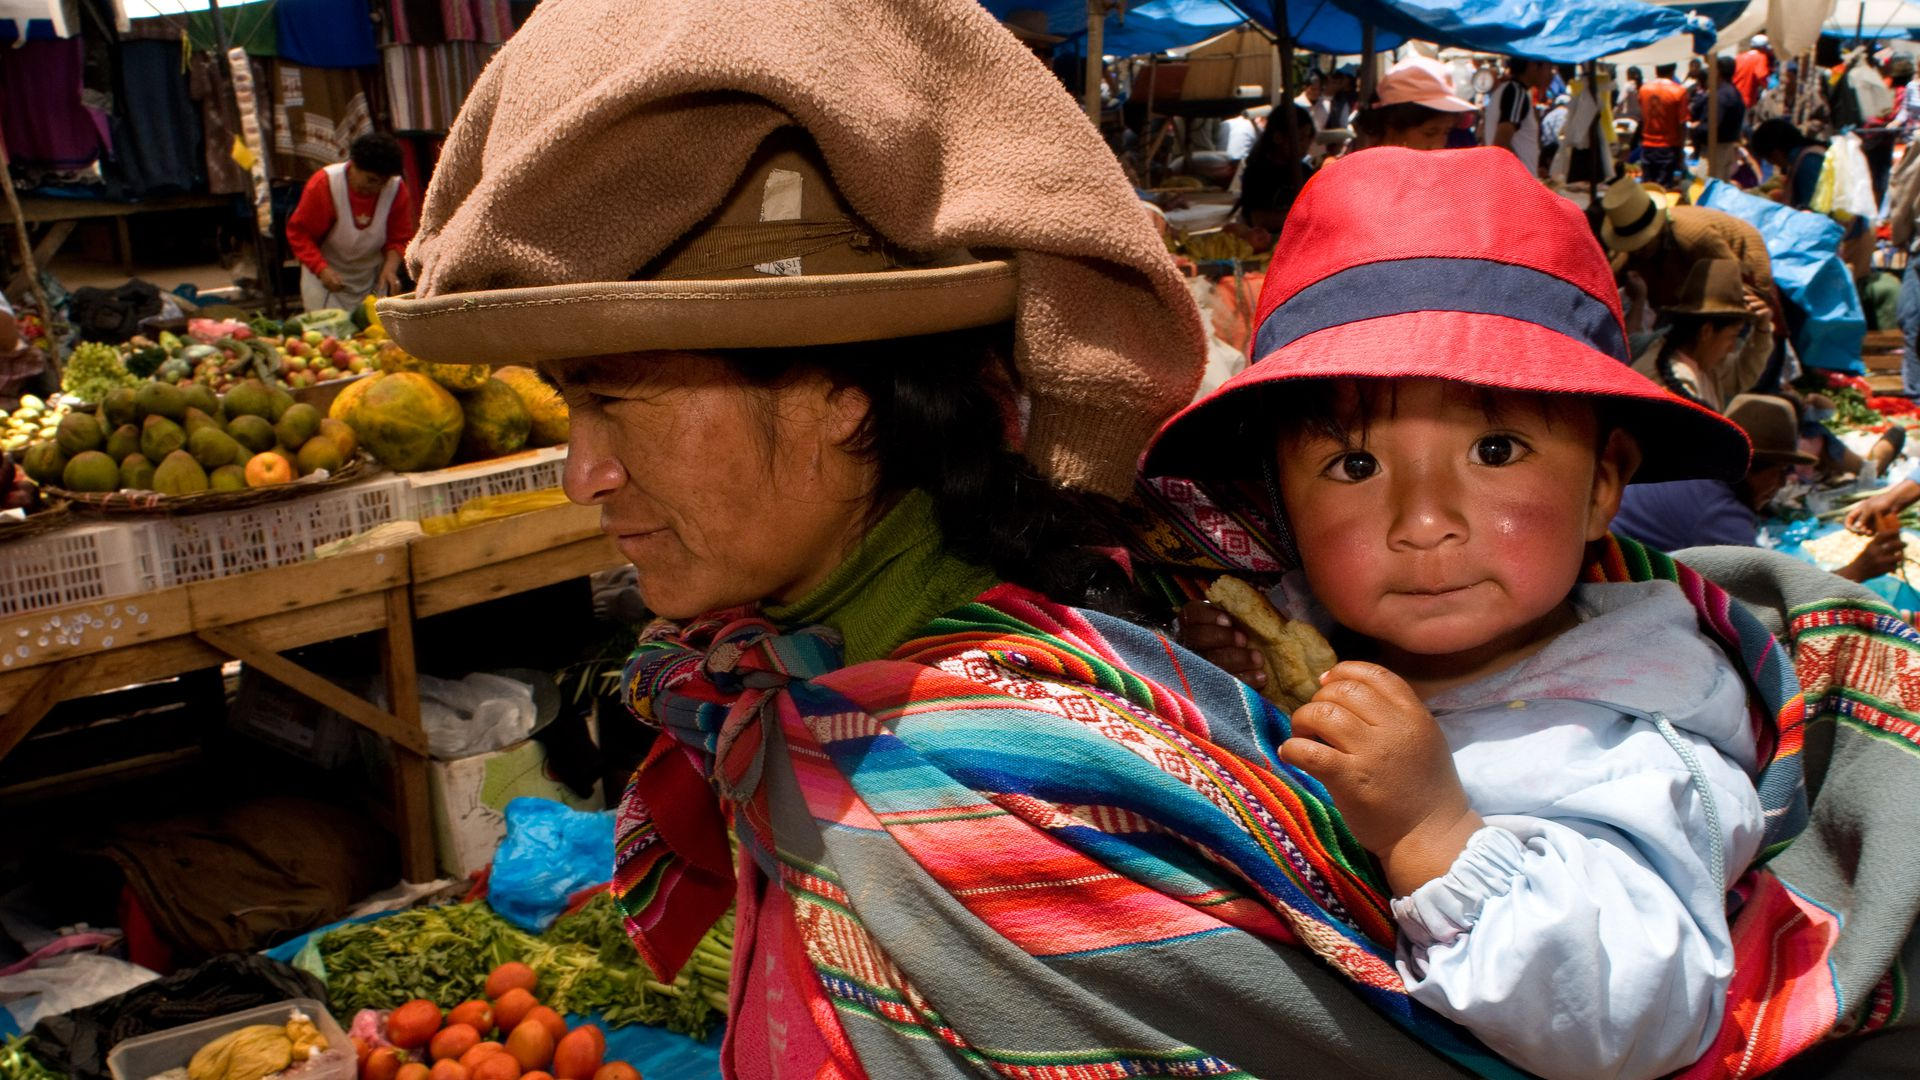 A mother and her son dressed in a traditional costume in Pisac Sunday market day. Pisac. Sacred Valley.